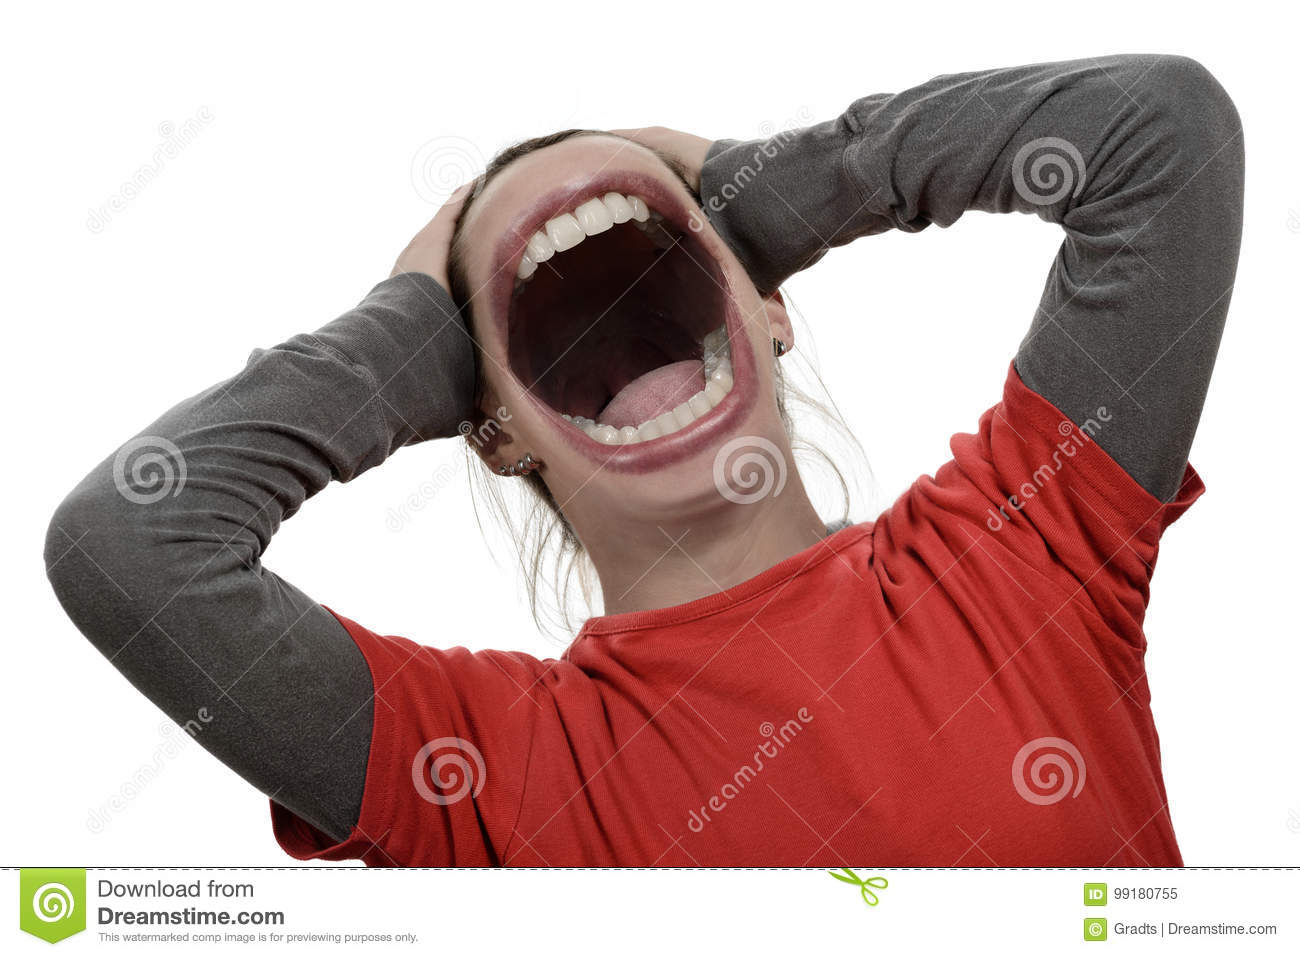 Scream Stock Images - Download 62,767 Royalty Free Photos